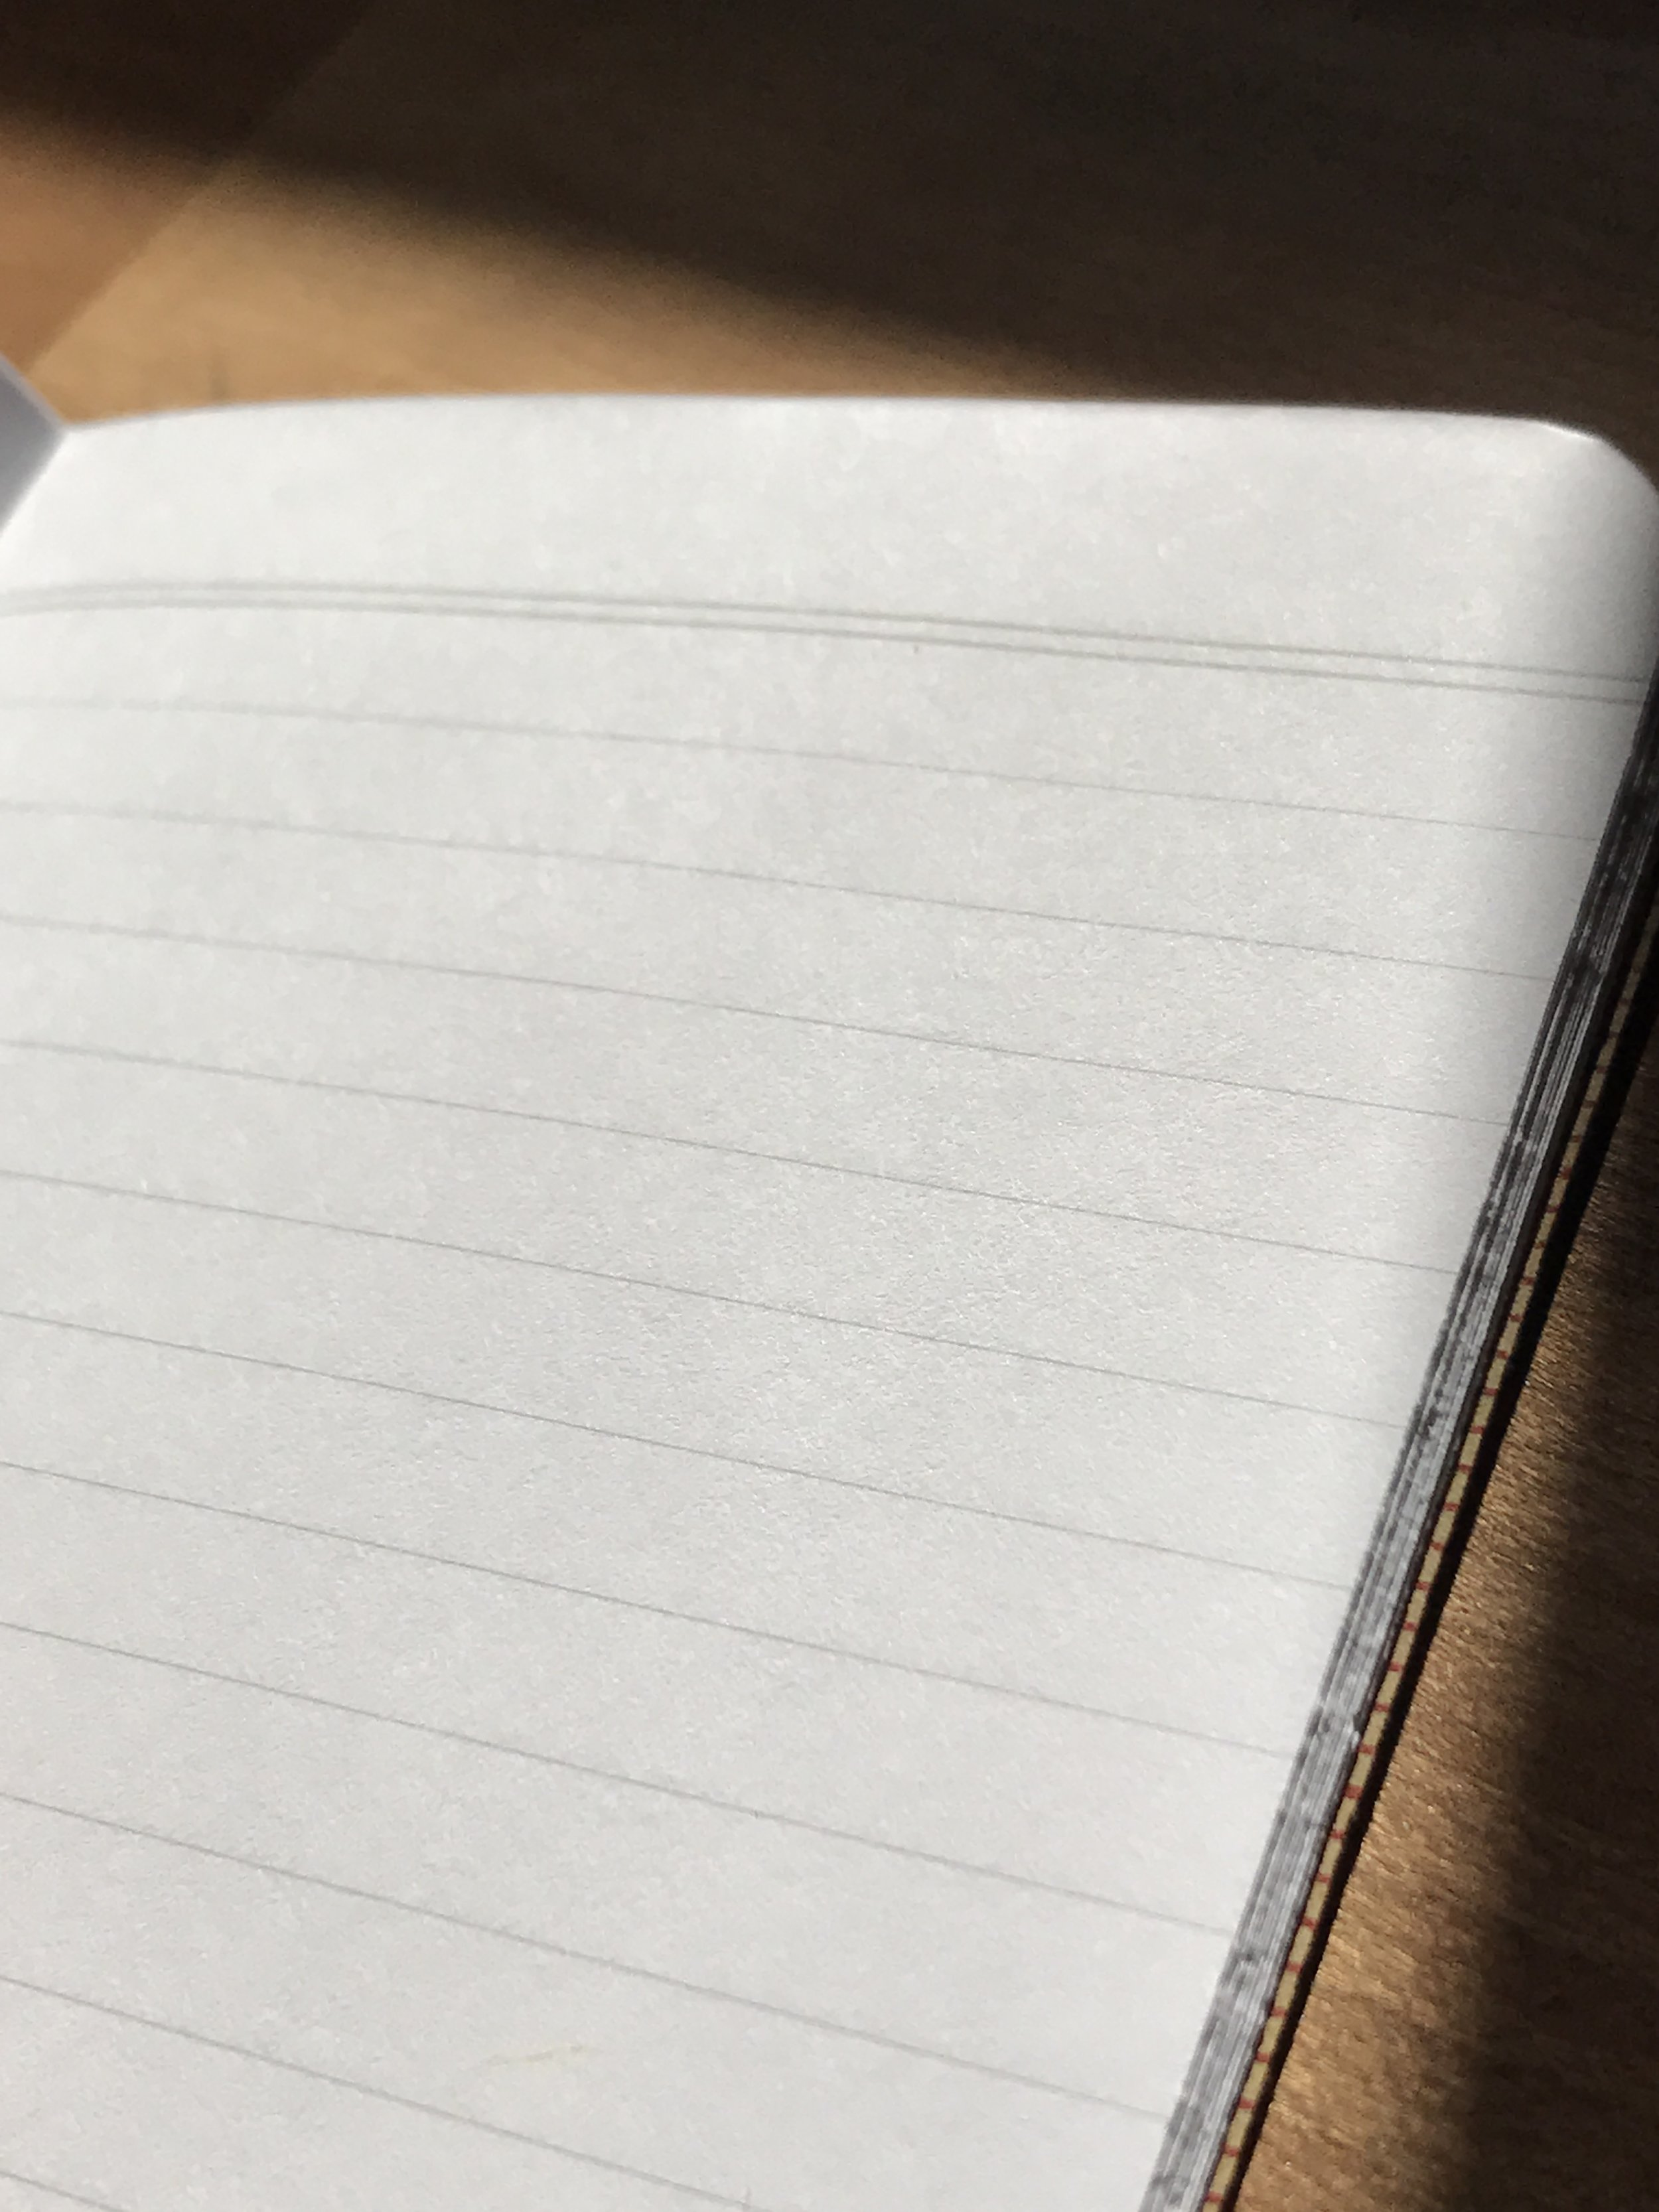 Lined paper!